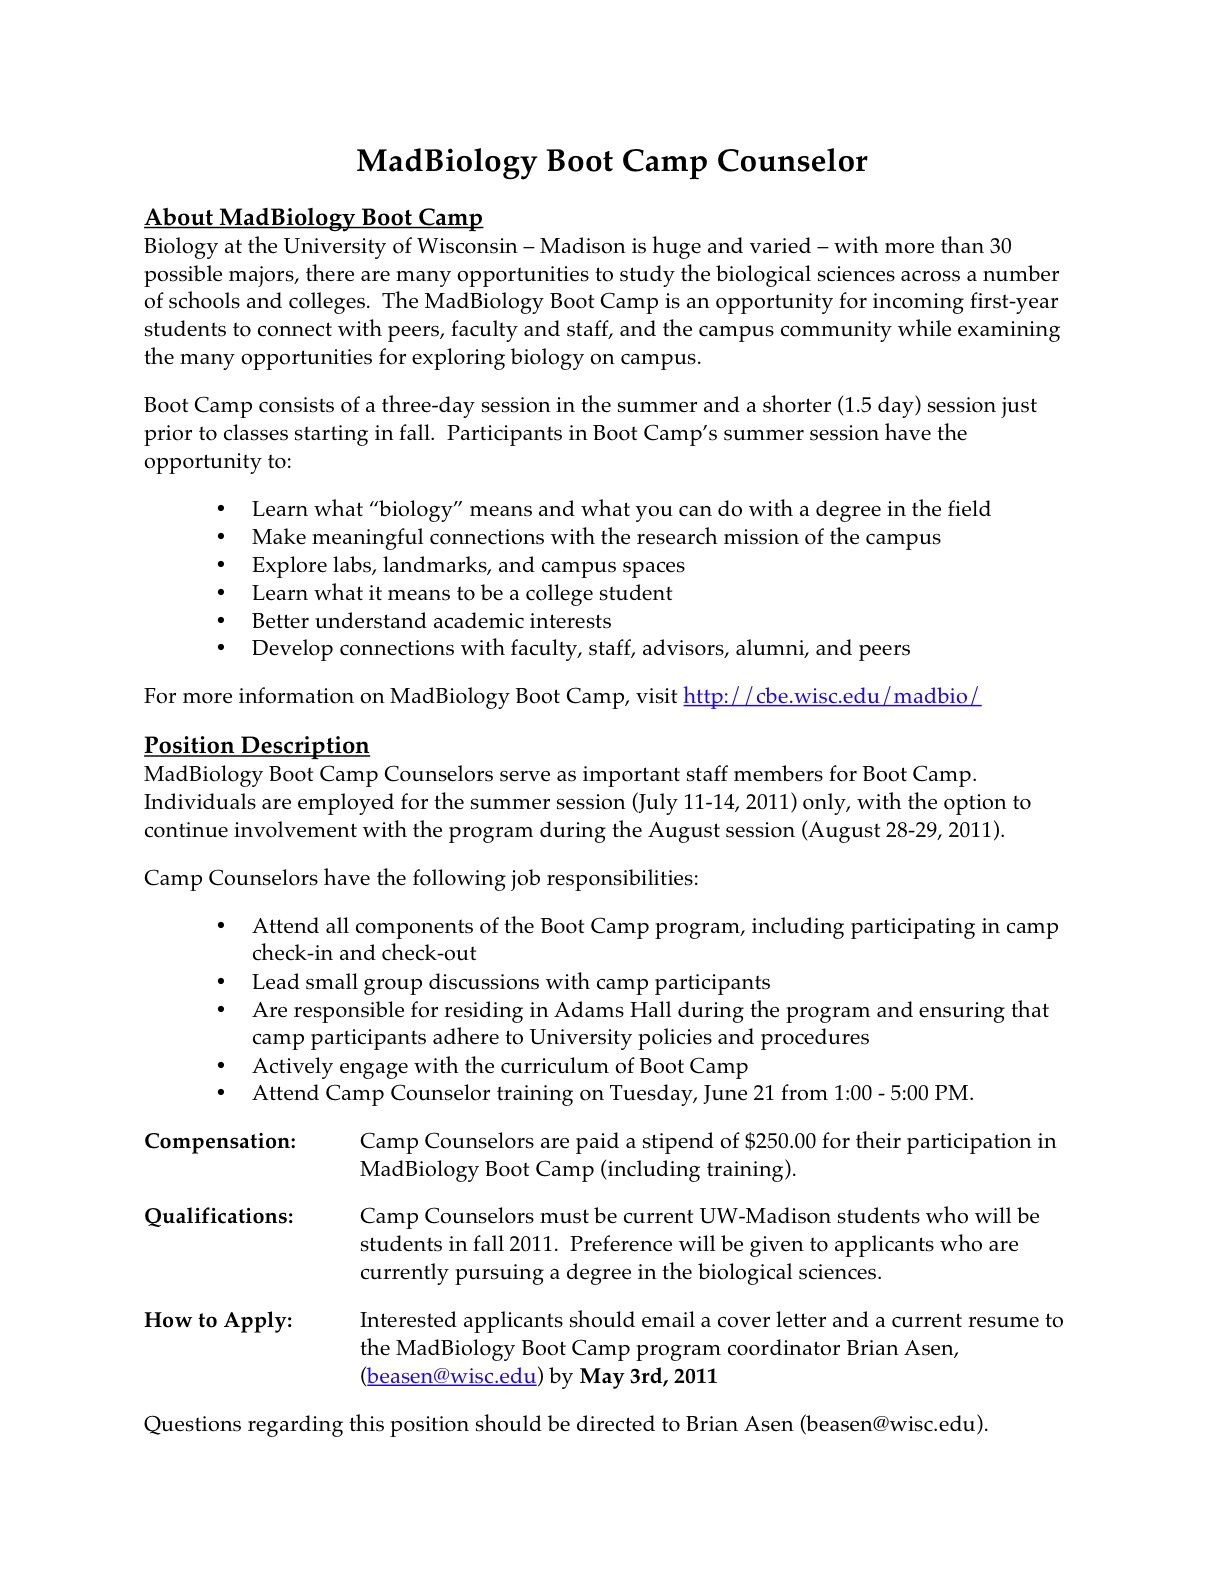 Summer Camp Letter to Parents Template - Ideas Sample Camp Counselor Resume for Your Free Gallery Resumes